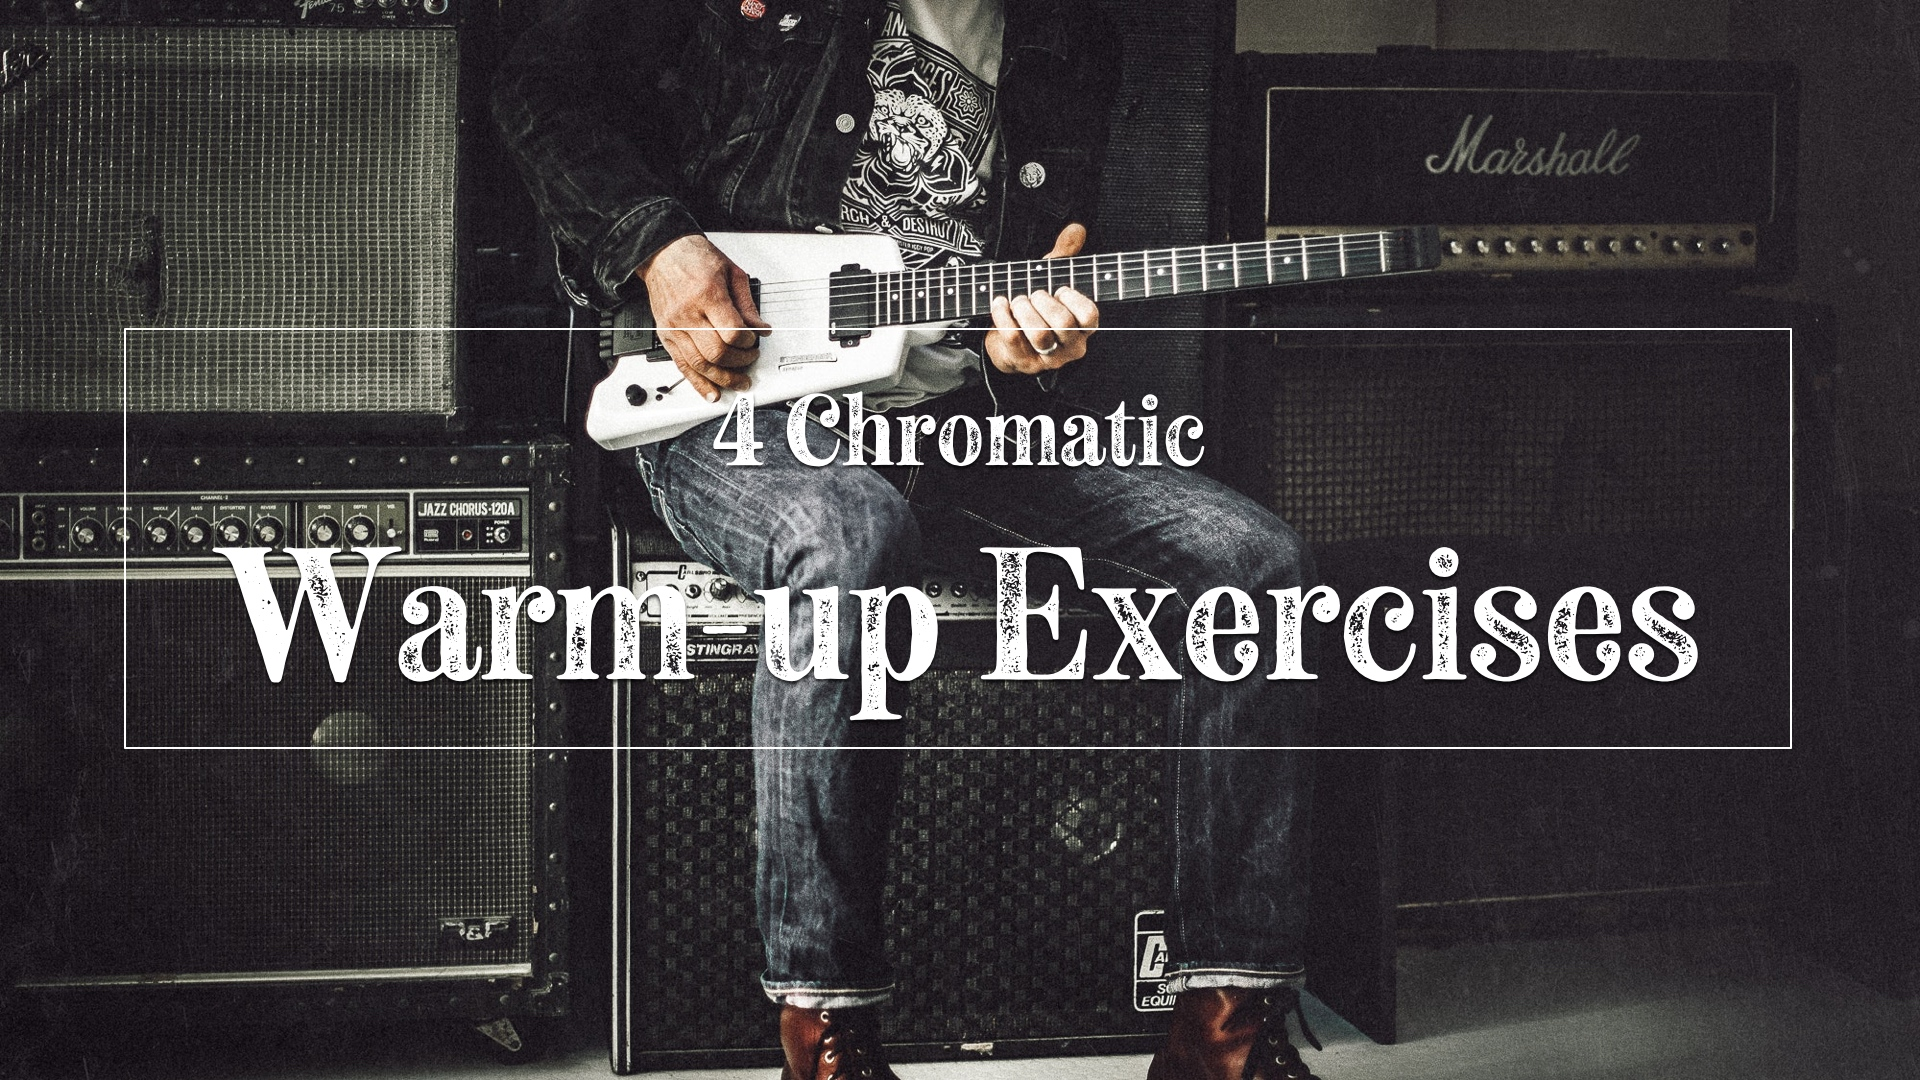 Chromatic warm-up exercises